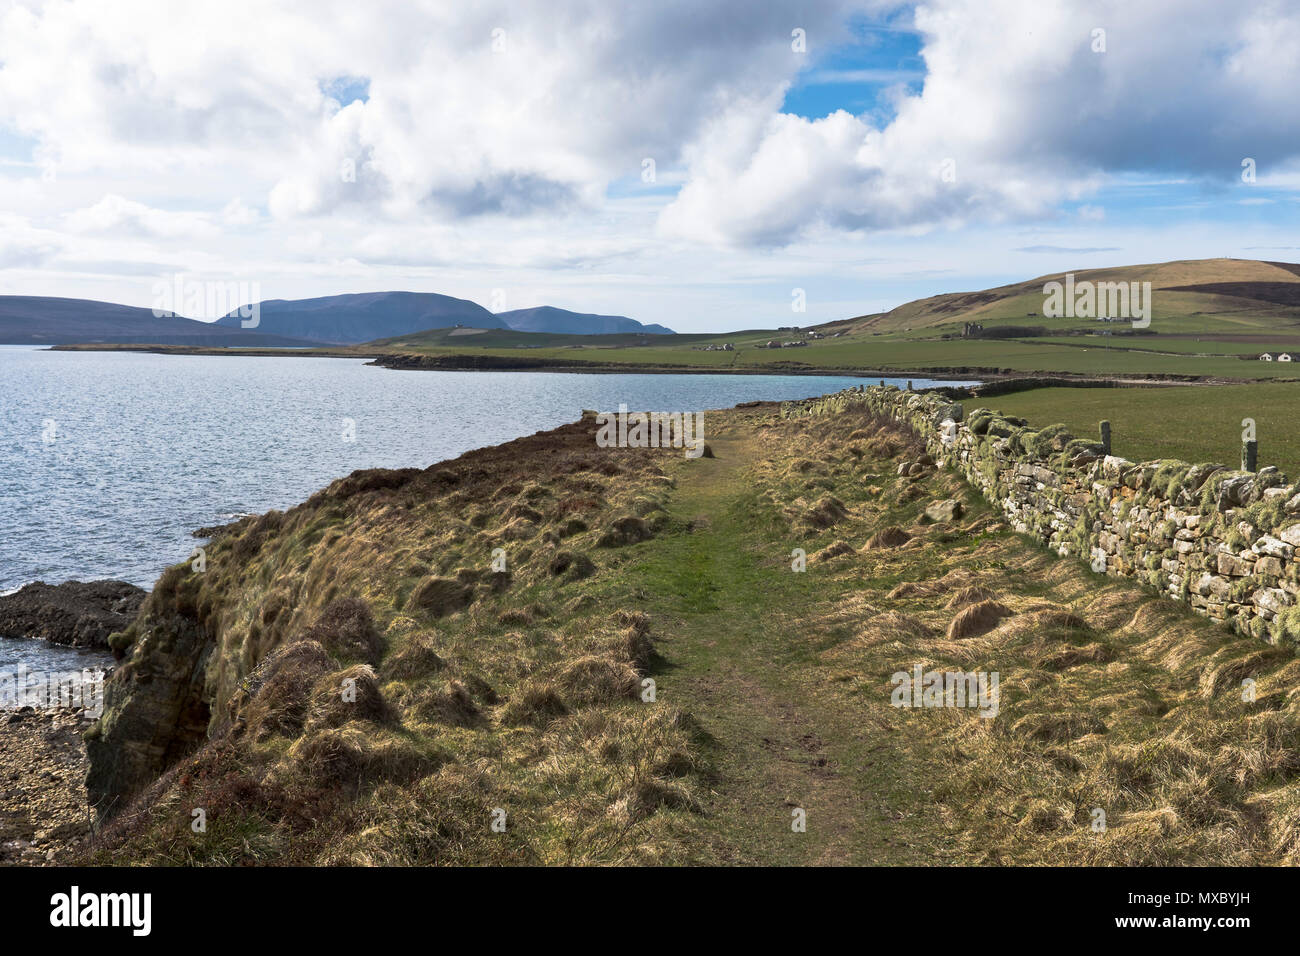 St Magnus Way footpath ORPHIR ORKNEY Foot path trail Scapa Flow cliff shore Finstown to Earl Hakons Round Kirk - Stock Image